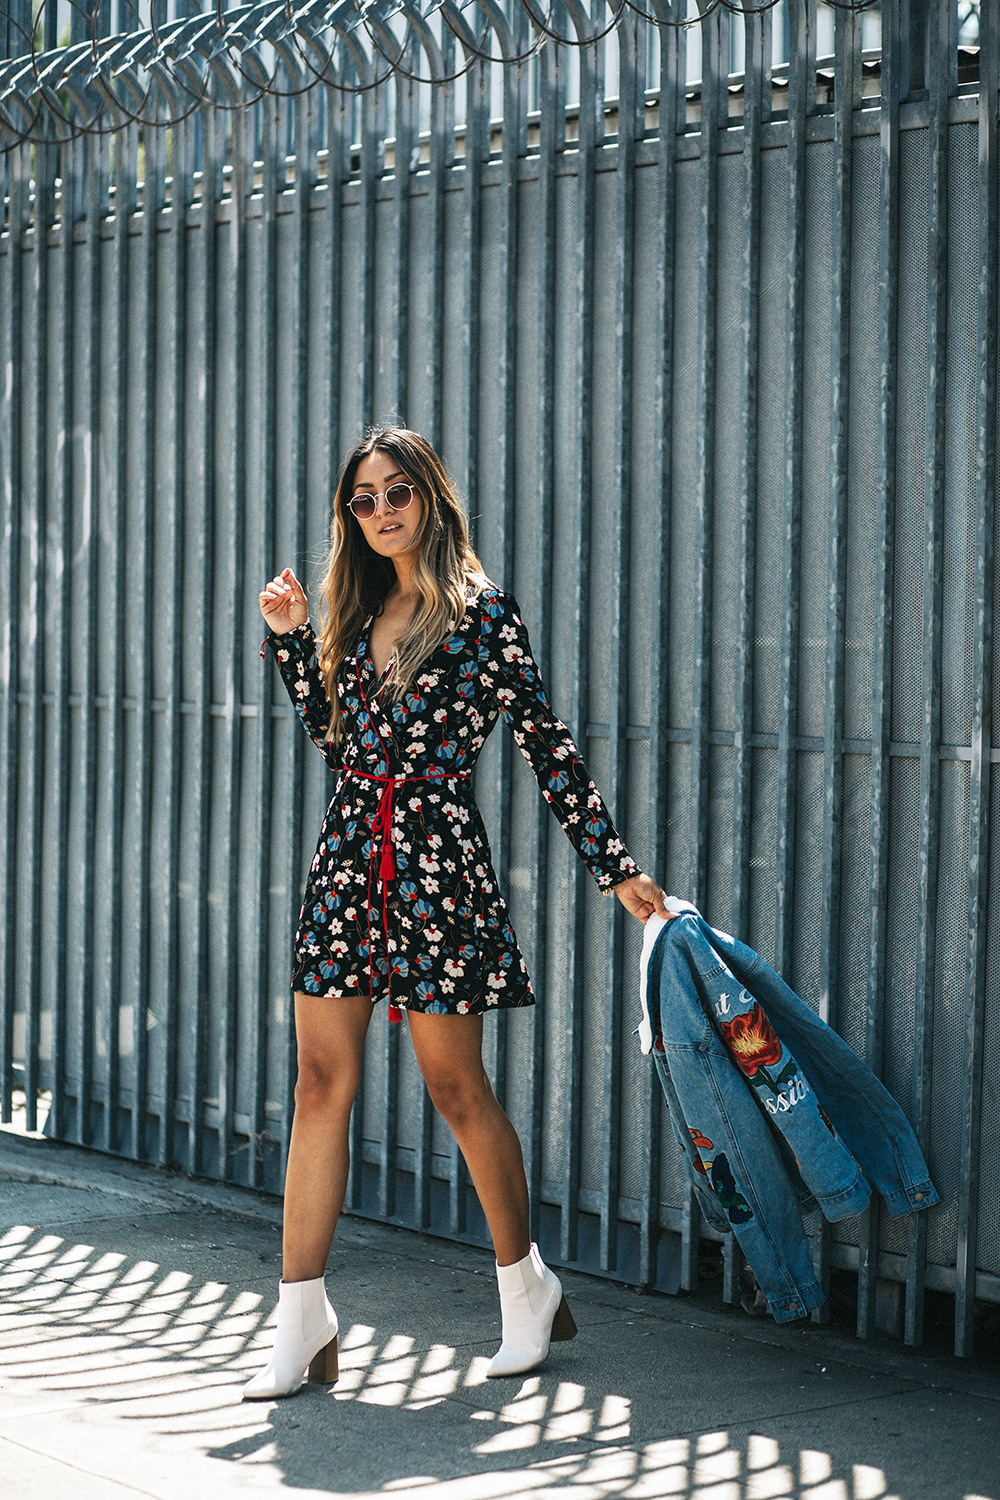 Fall Dressing, uk glamorous, glamorous, dress, jacket, denim jacket, fall, ootd, melrodstyle, la blogger, latina blogger, mexican blogger, street style, melrodstlye